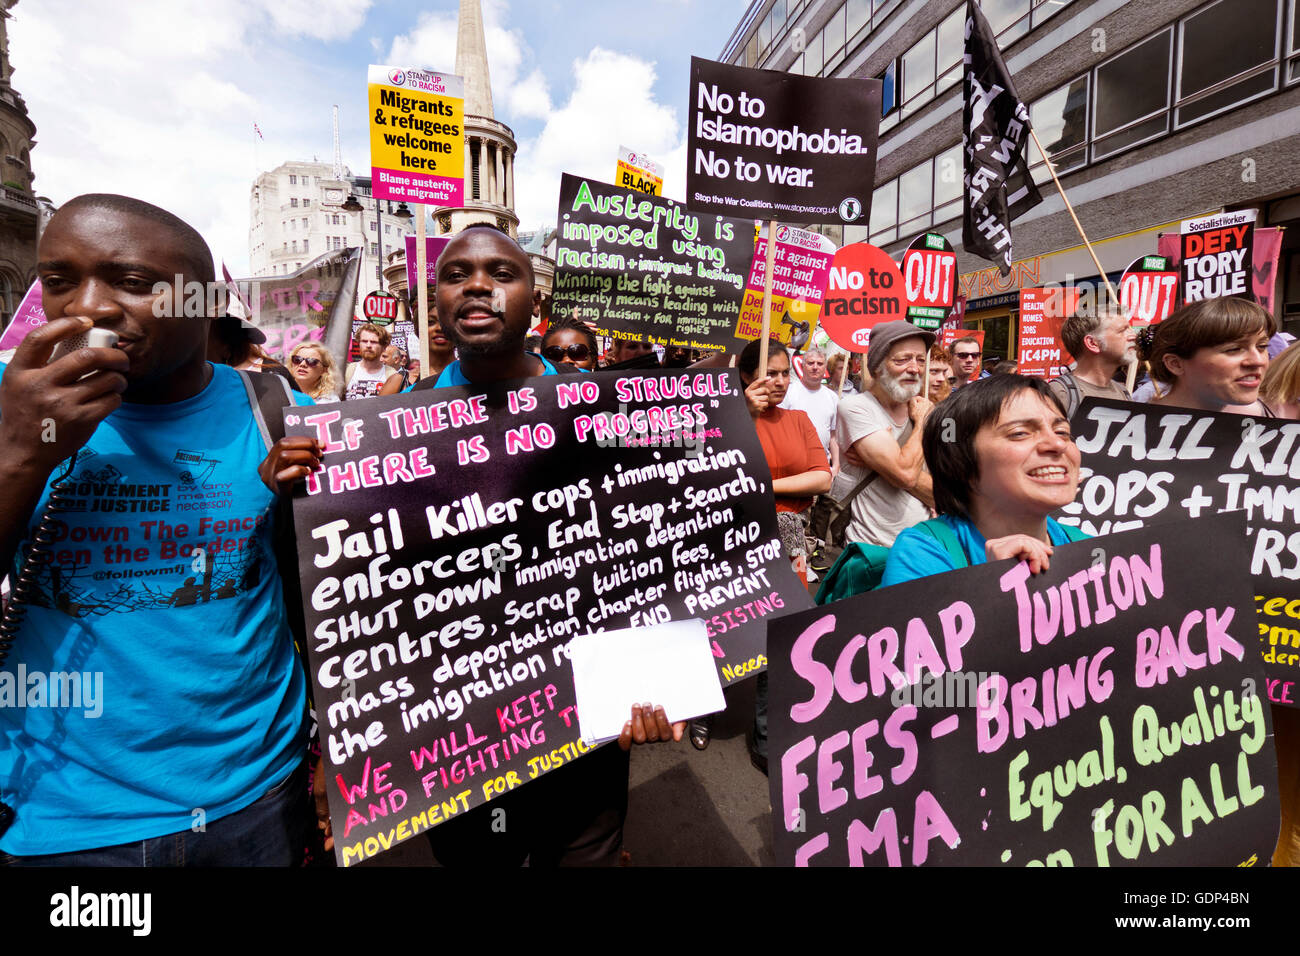 Shut down  Refugee detention Centres. Movement for Justice by any means necessary. Protest in London against racism - Stock Image